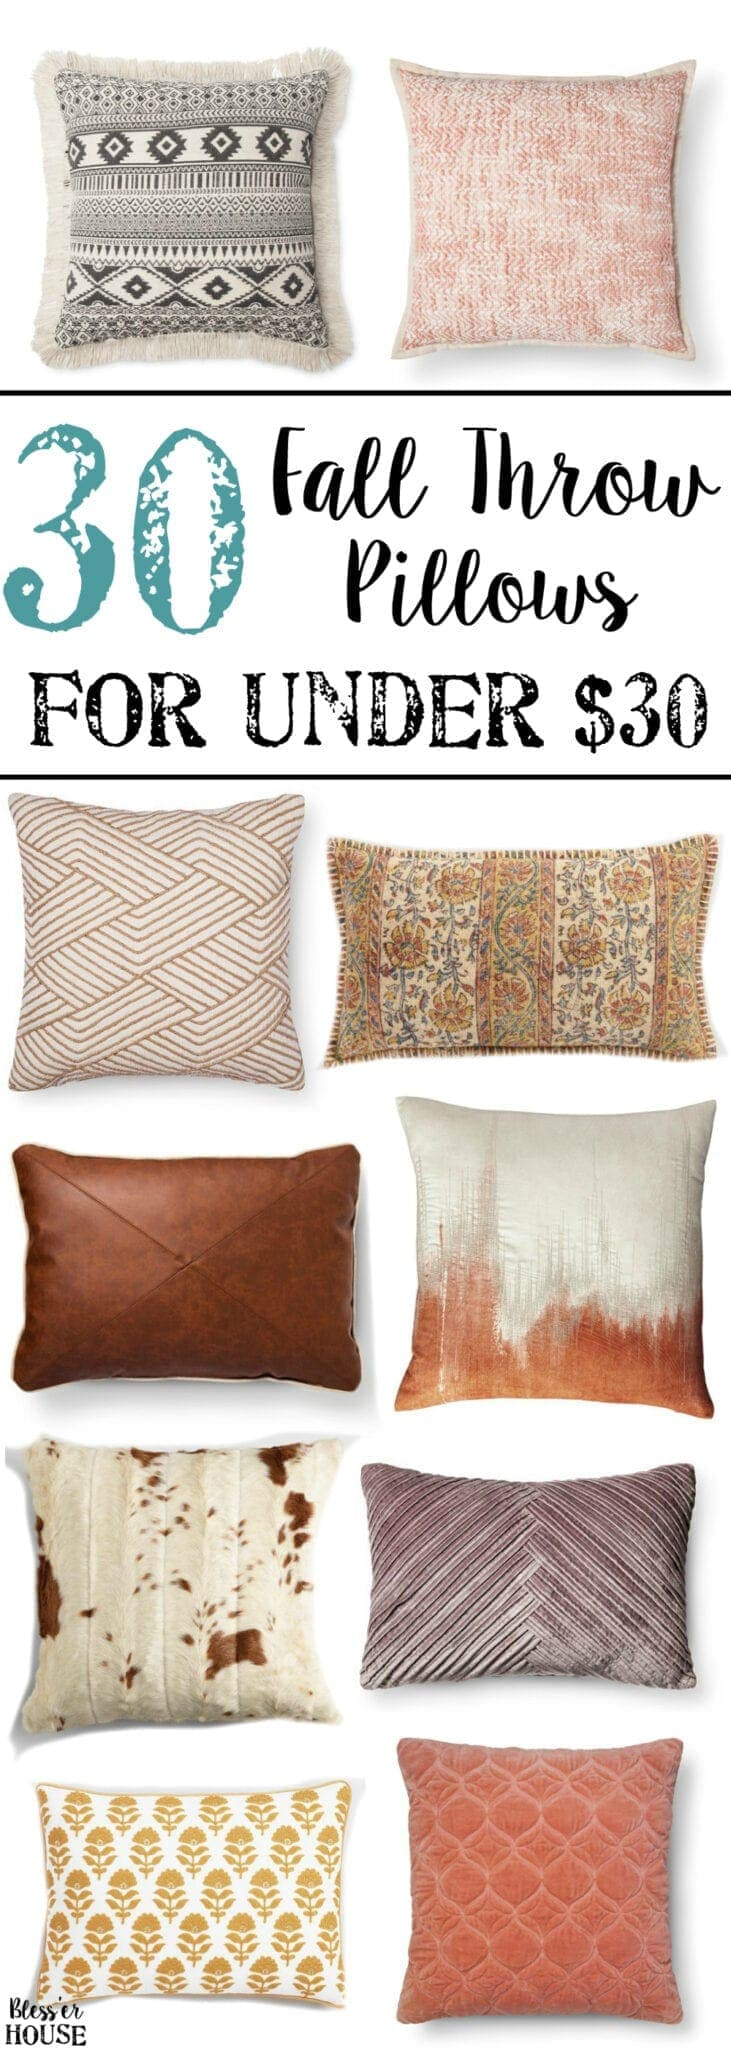 30 Fall Pillows Under $30 | blesserhouse.com - A budget shopping home decor round-up of 30 fall pillows with velvet, leather, knit, and autumn colors, all for under $30.